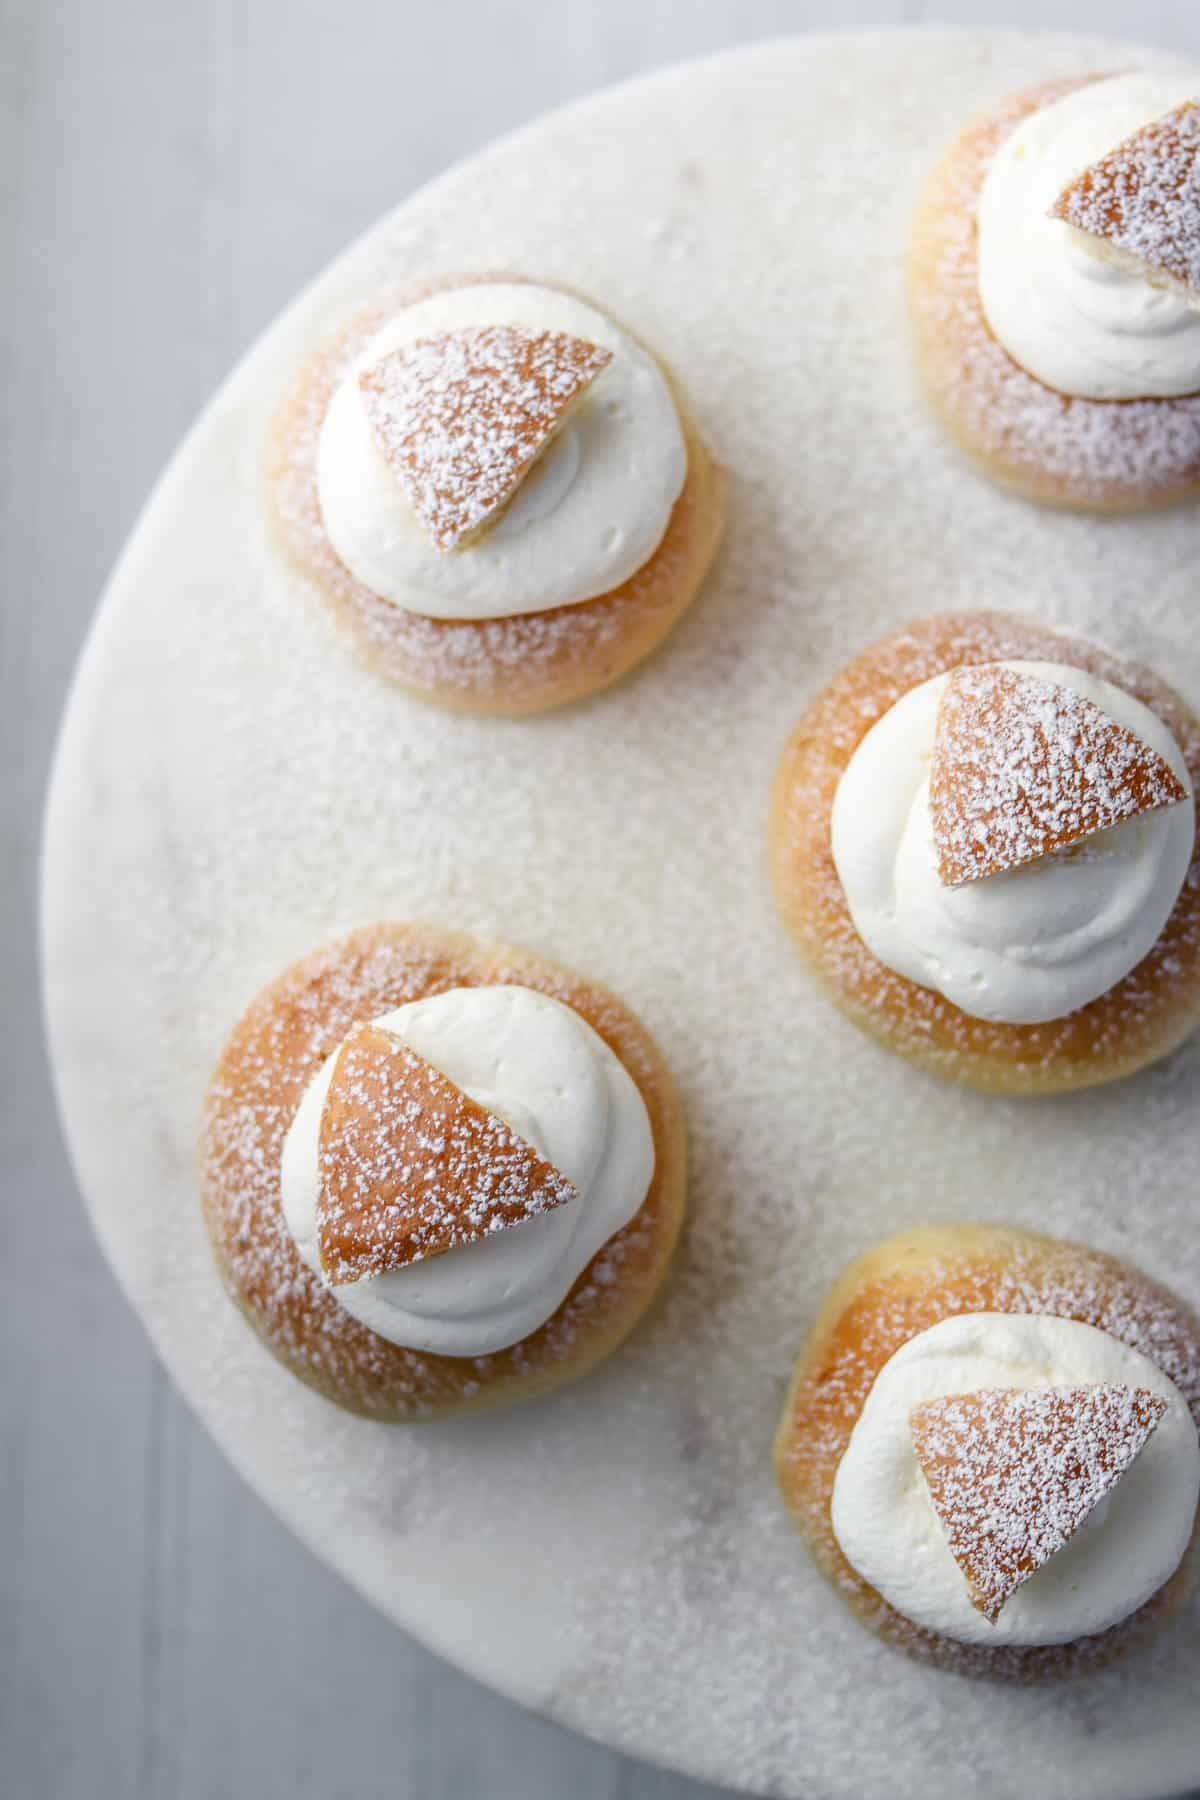 Semlor buns on a marble surface.